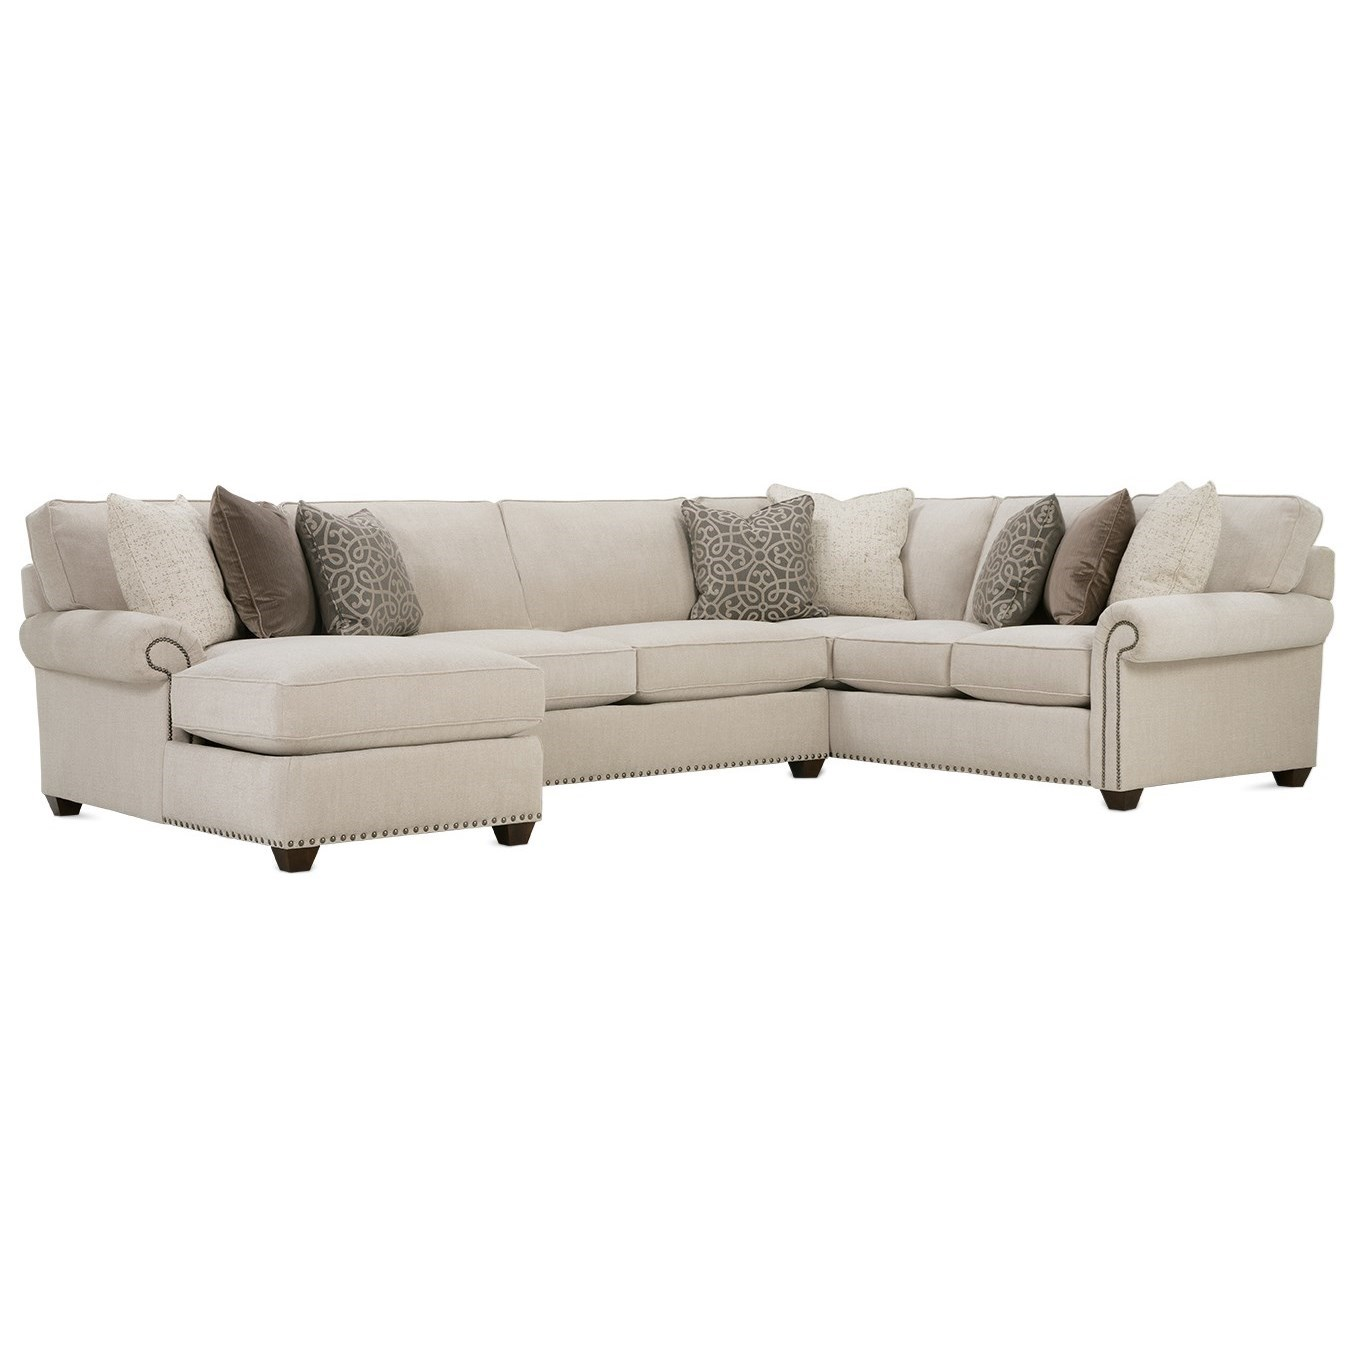 Morgan Traditional Three Piece Sectional Sofa by Rowe at Wilson's Furniture